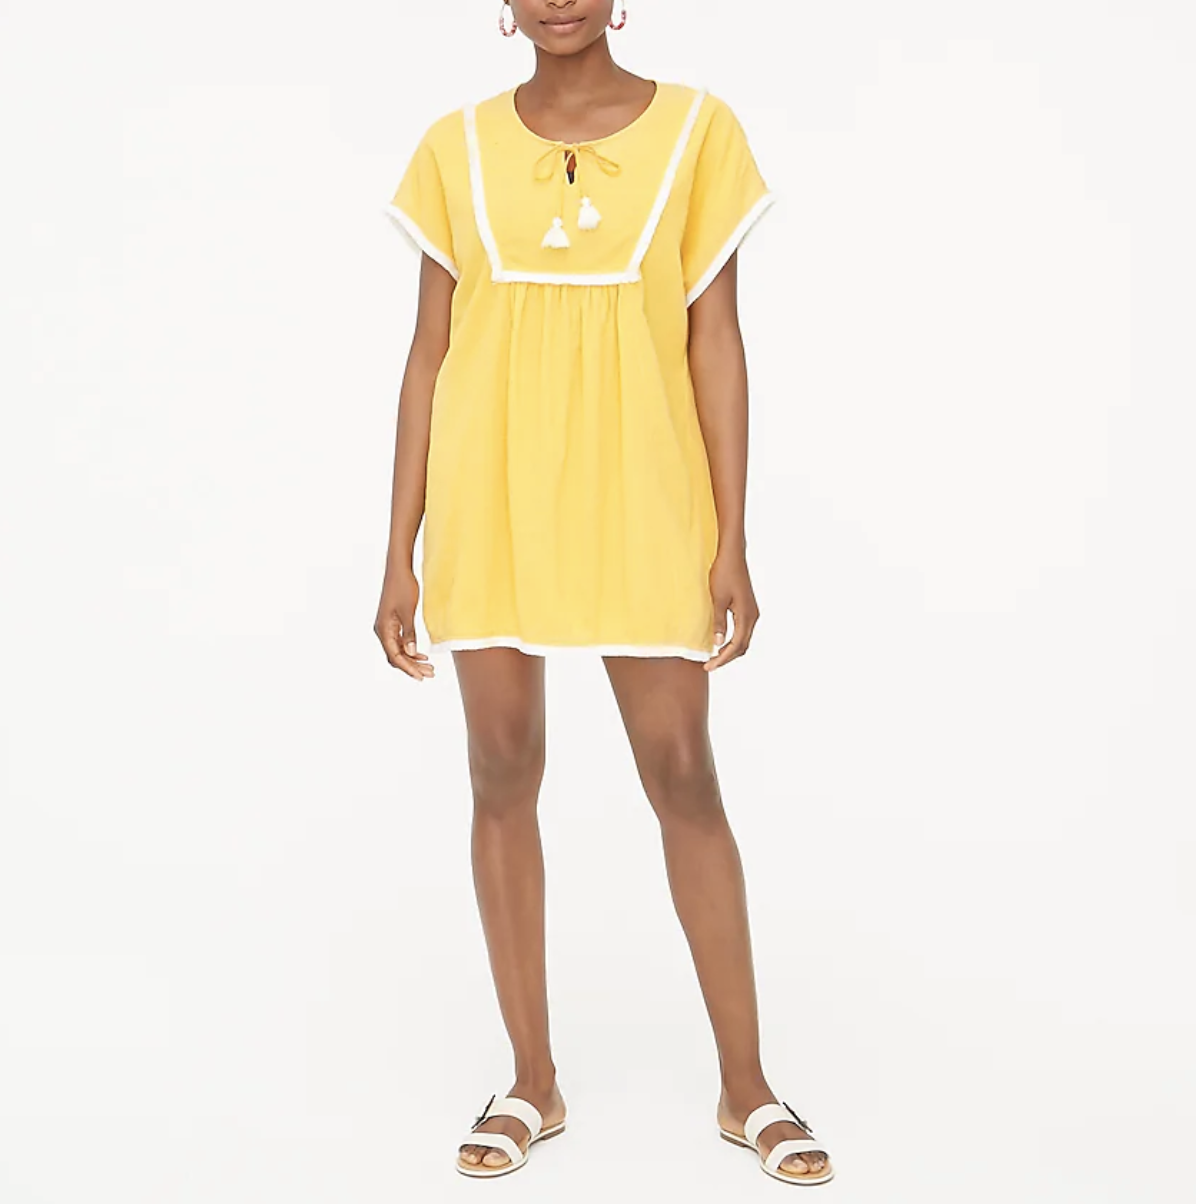 A  model wears a yellow fringe tunic with white sandals